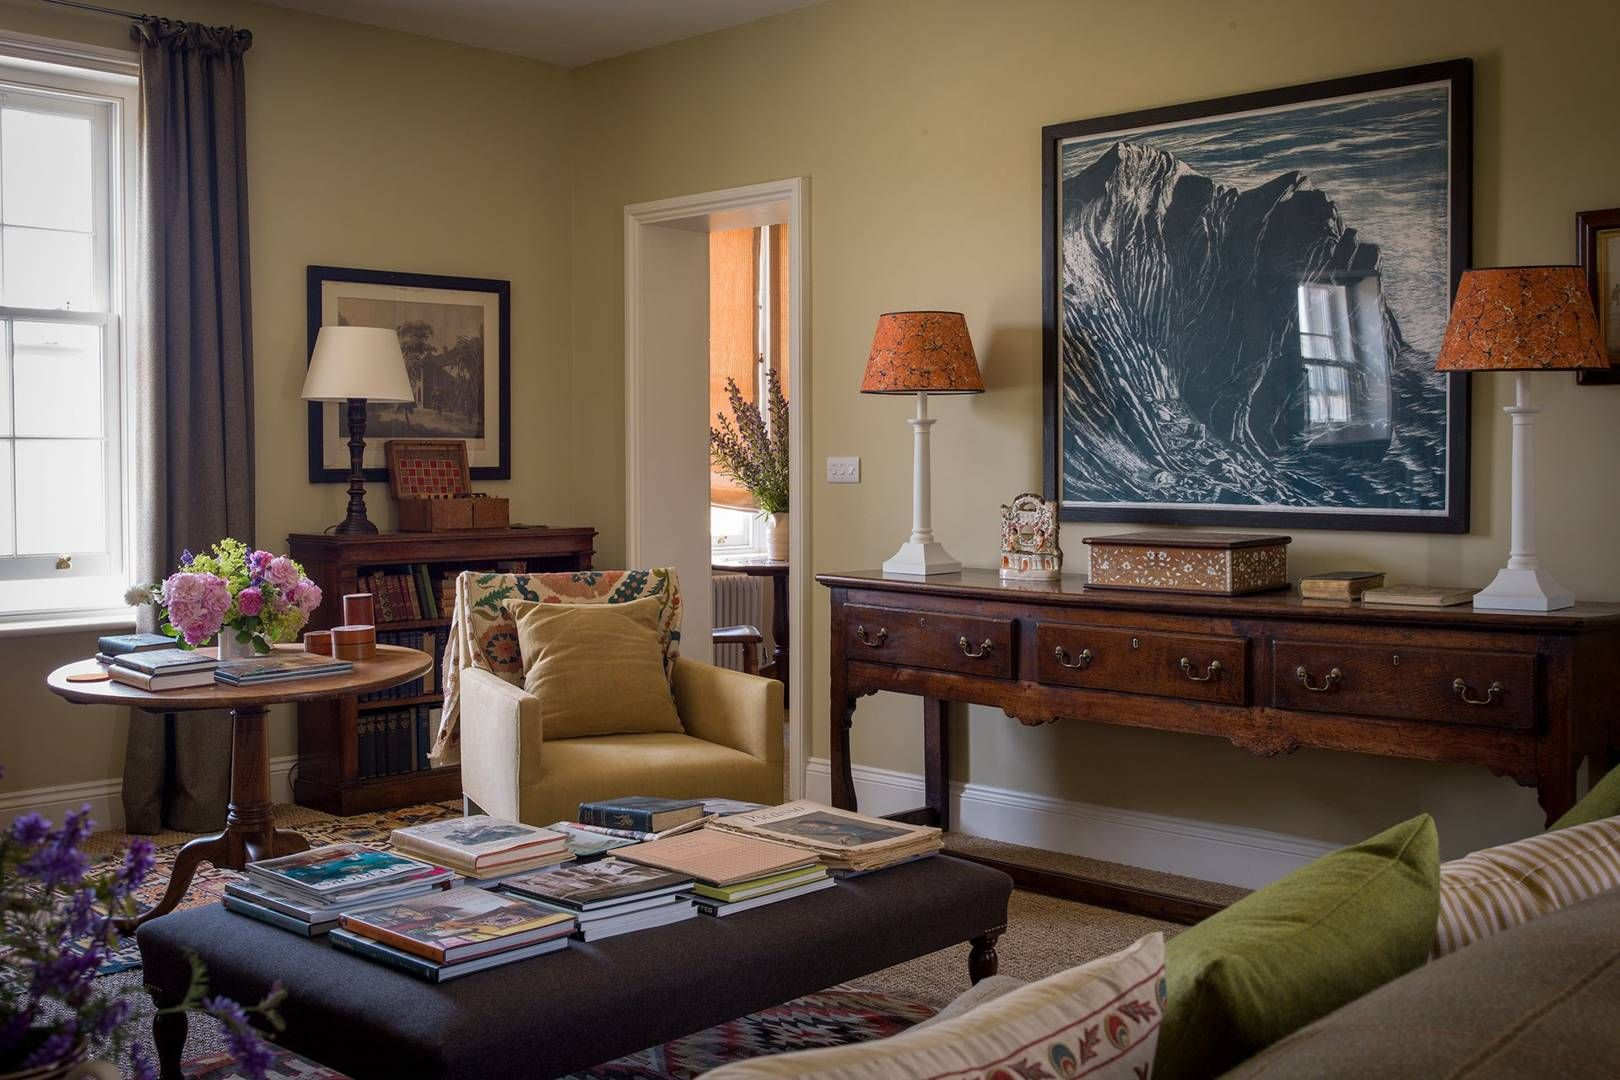 Style File Ben Pentreath in 2020 Farm house living room